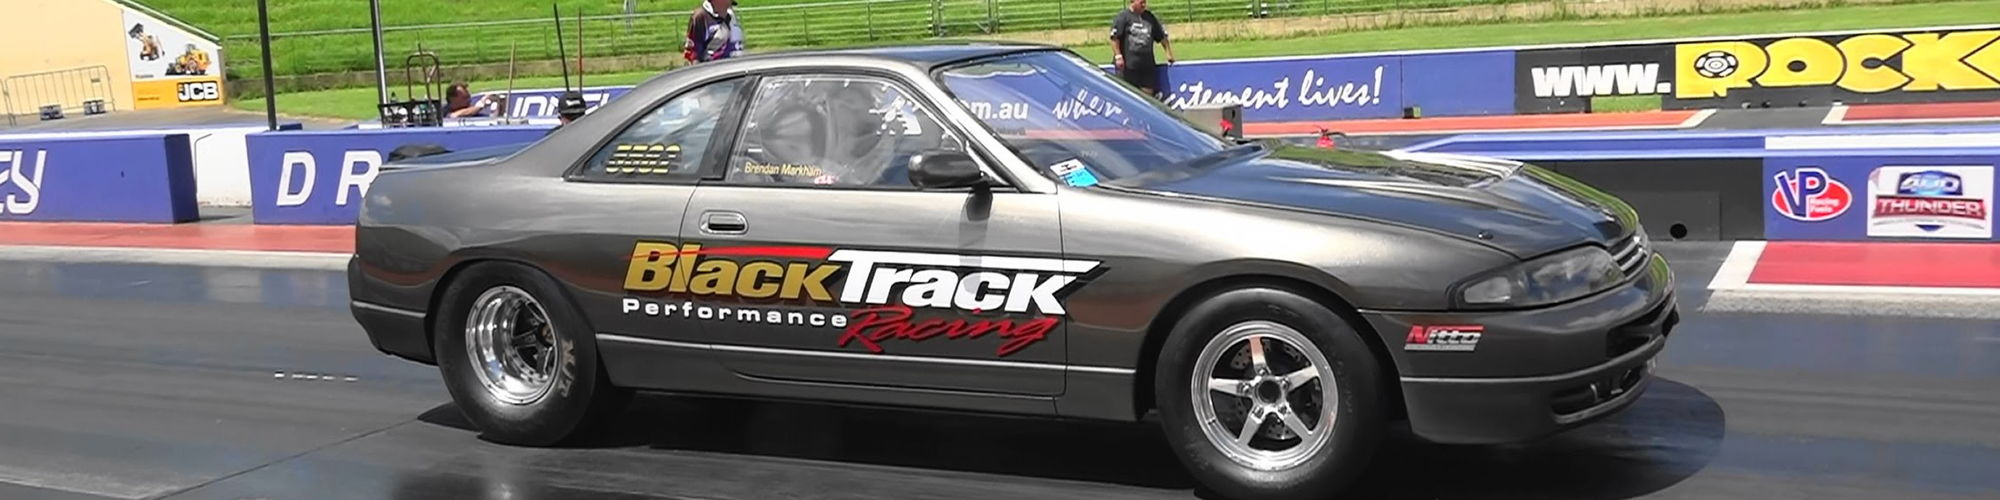 BlackTrack Performance cover image